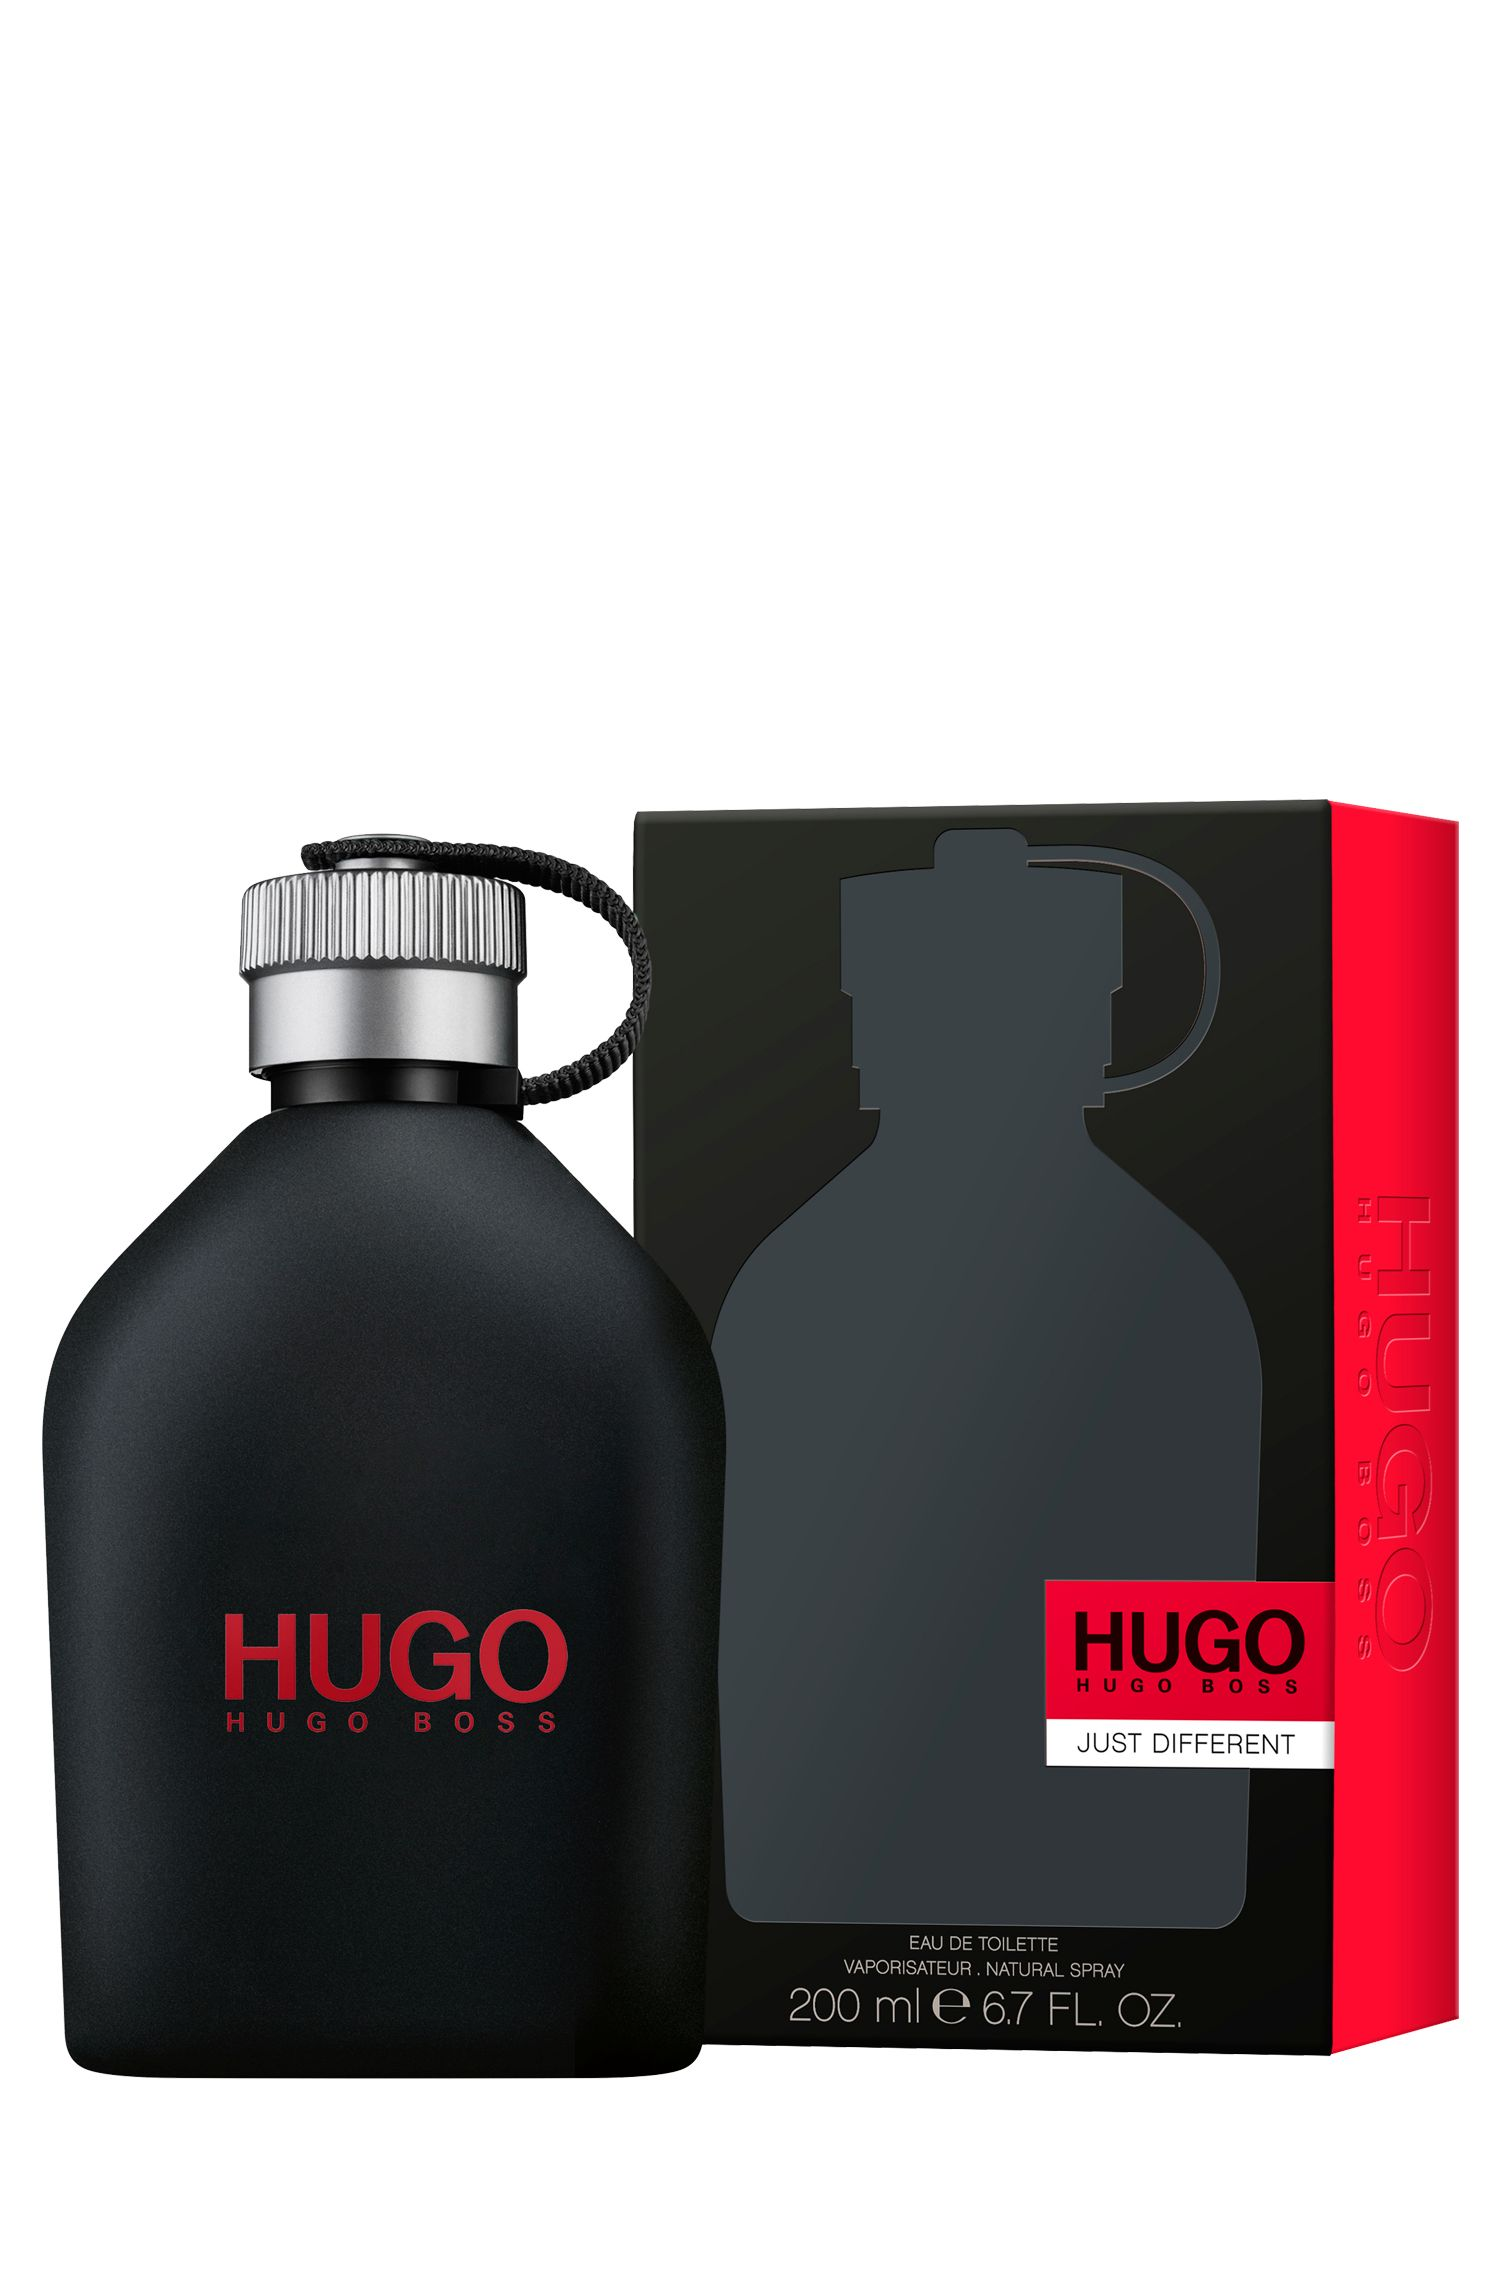 HUGO Just Different eau de toilette 200 ml